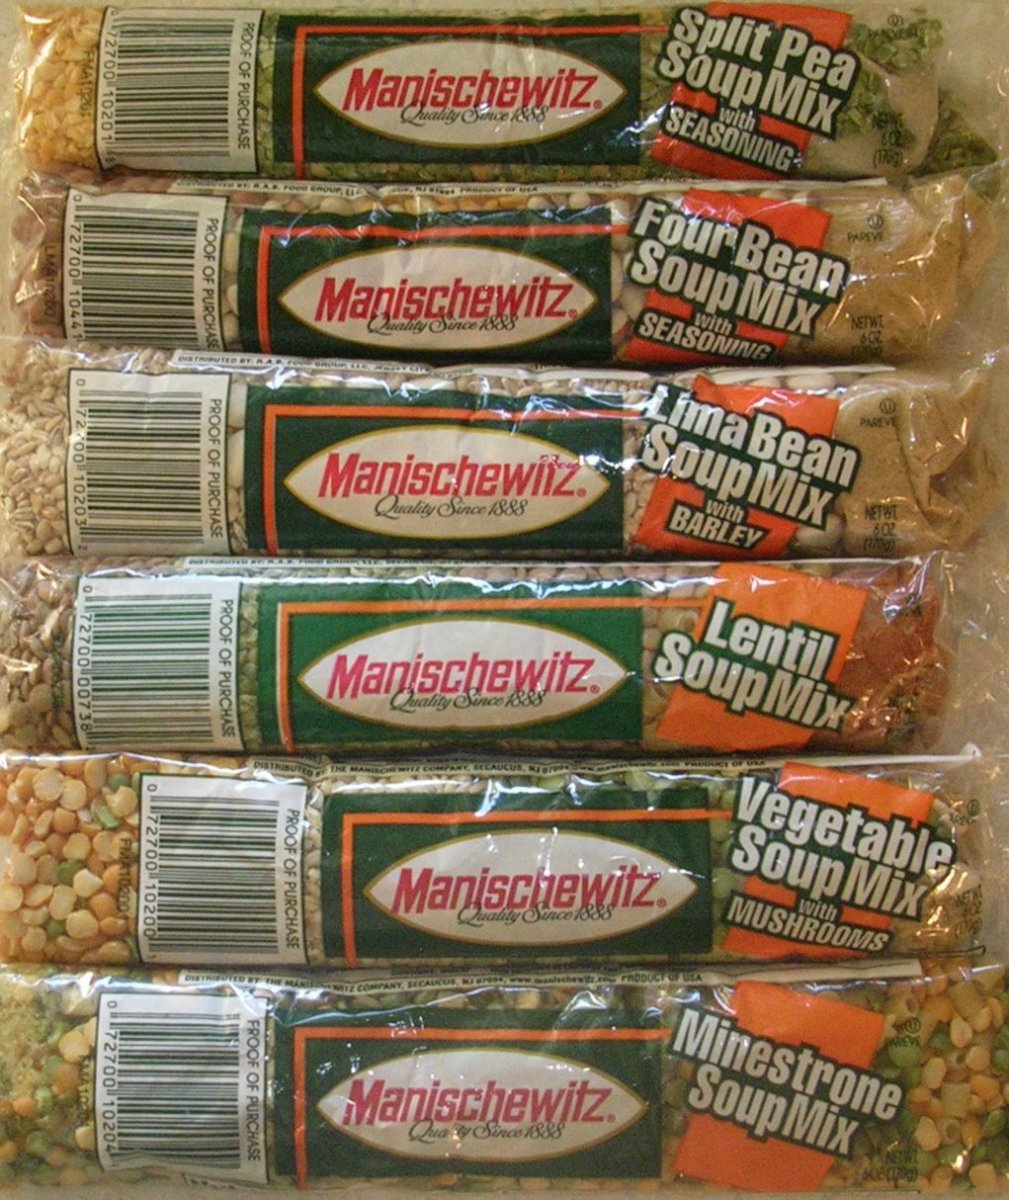 Make Your Own Signature Soups Using Manischewitz Cello Soup Mixes